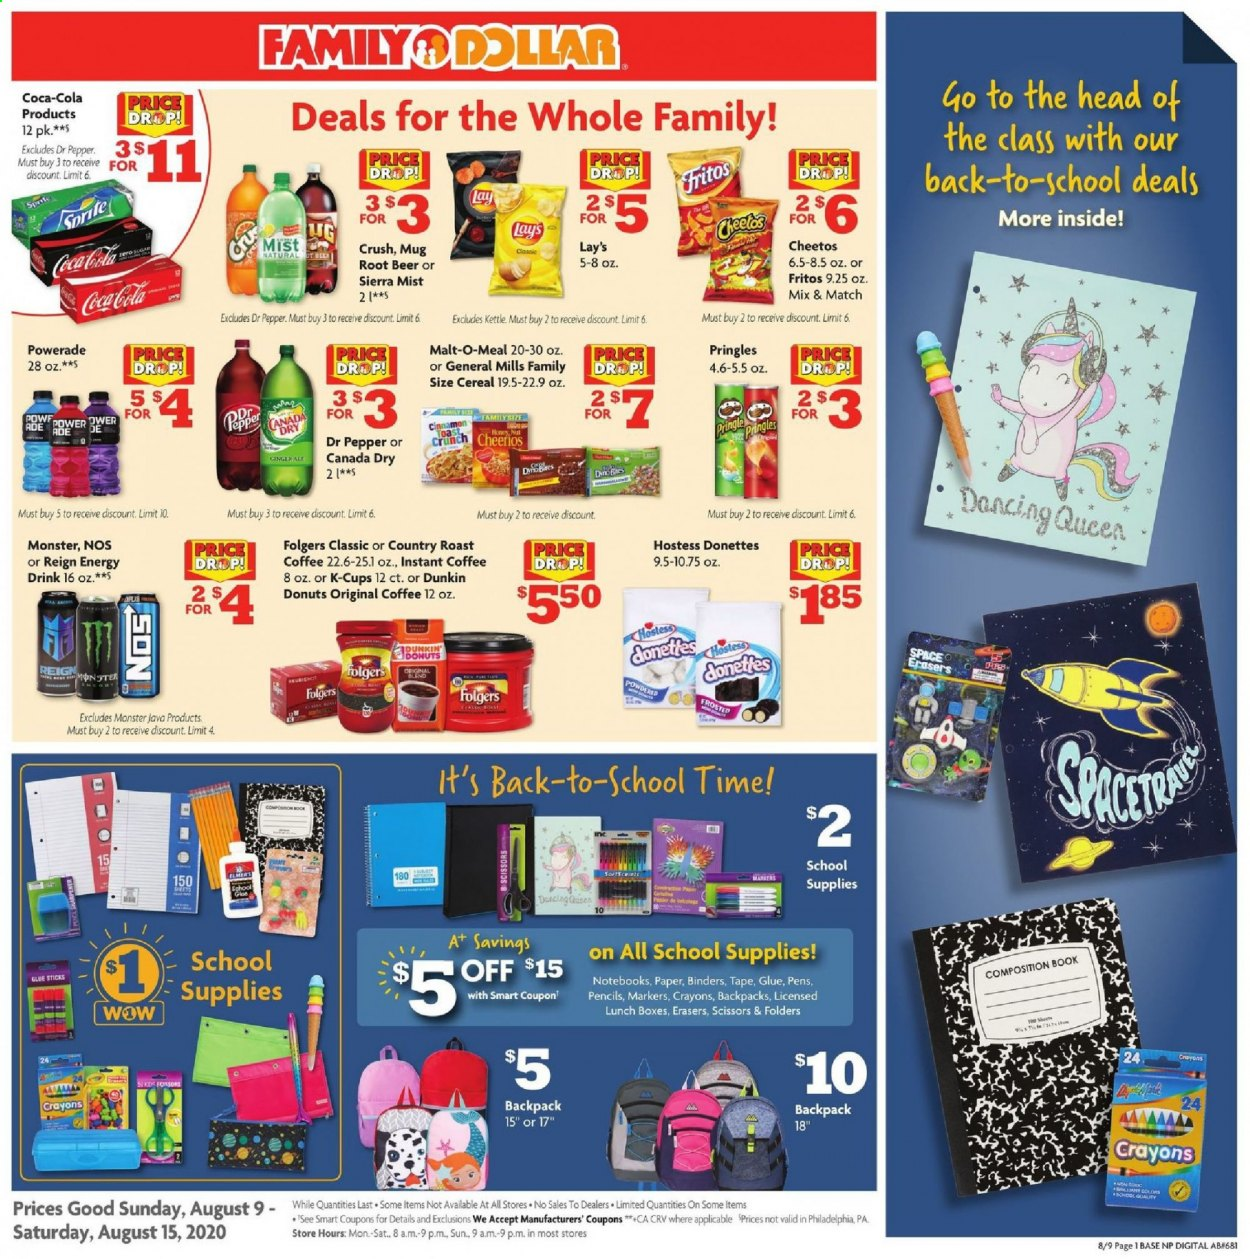 Family Dollar Flyer - 08.09.2020 - 08.15.2020 - Sales products - backpack, beer, box, canada dry, cereals, coca-cola, fritos, ginger, mug, sprite, tape, head, honey, instant coffee, philadelphia, powerade, pringles, cheerios, cheetos, glue, glue stick, pepper, donuts, cereal, energy drink, monster, lay's, scissors, folder, pencils, drink, book, dr. pepper, roast, folgers, donut, folders, kettle. Page 1.